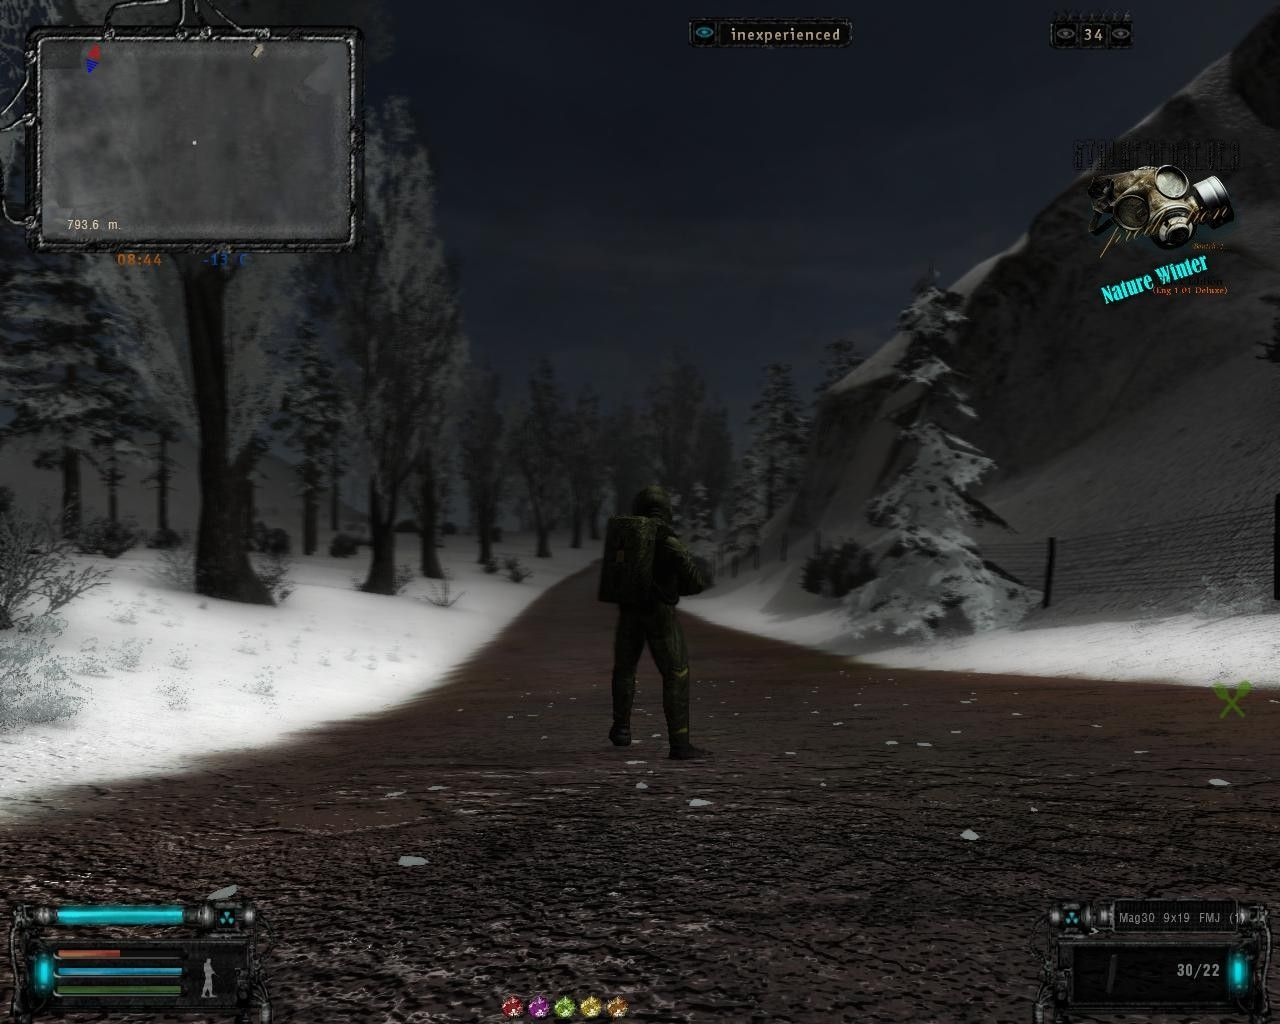 Nature Winter 2.3 Black Edition (eng 1.01 Deluxe) Images Gallery! Serie:1# Ss_bou56